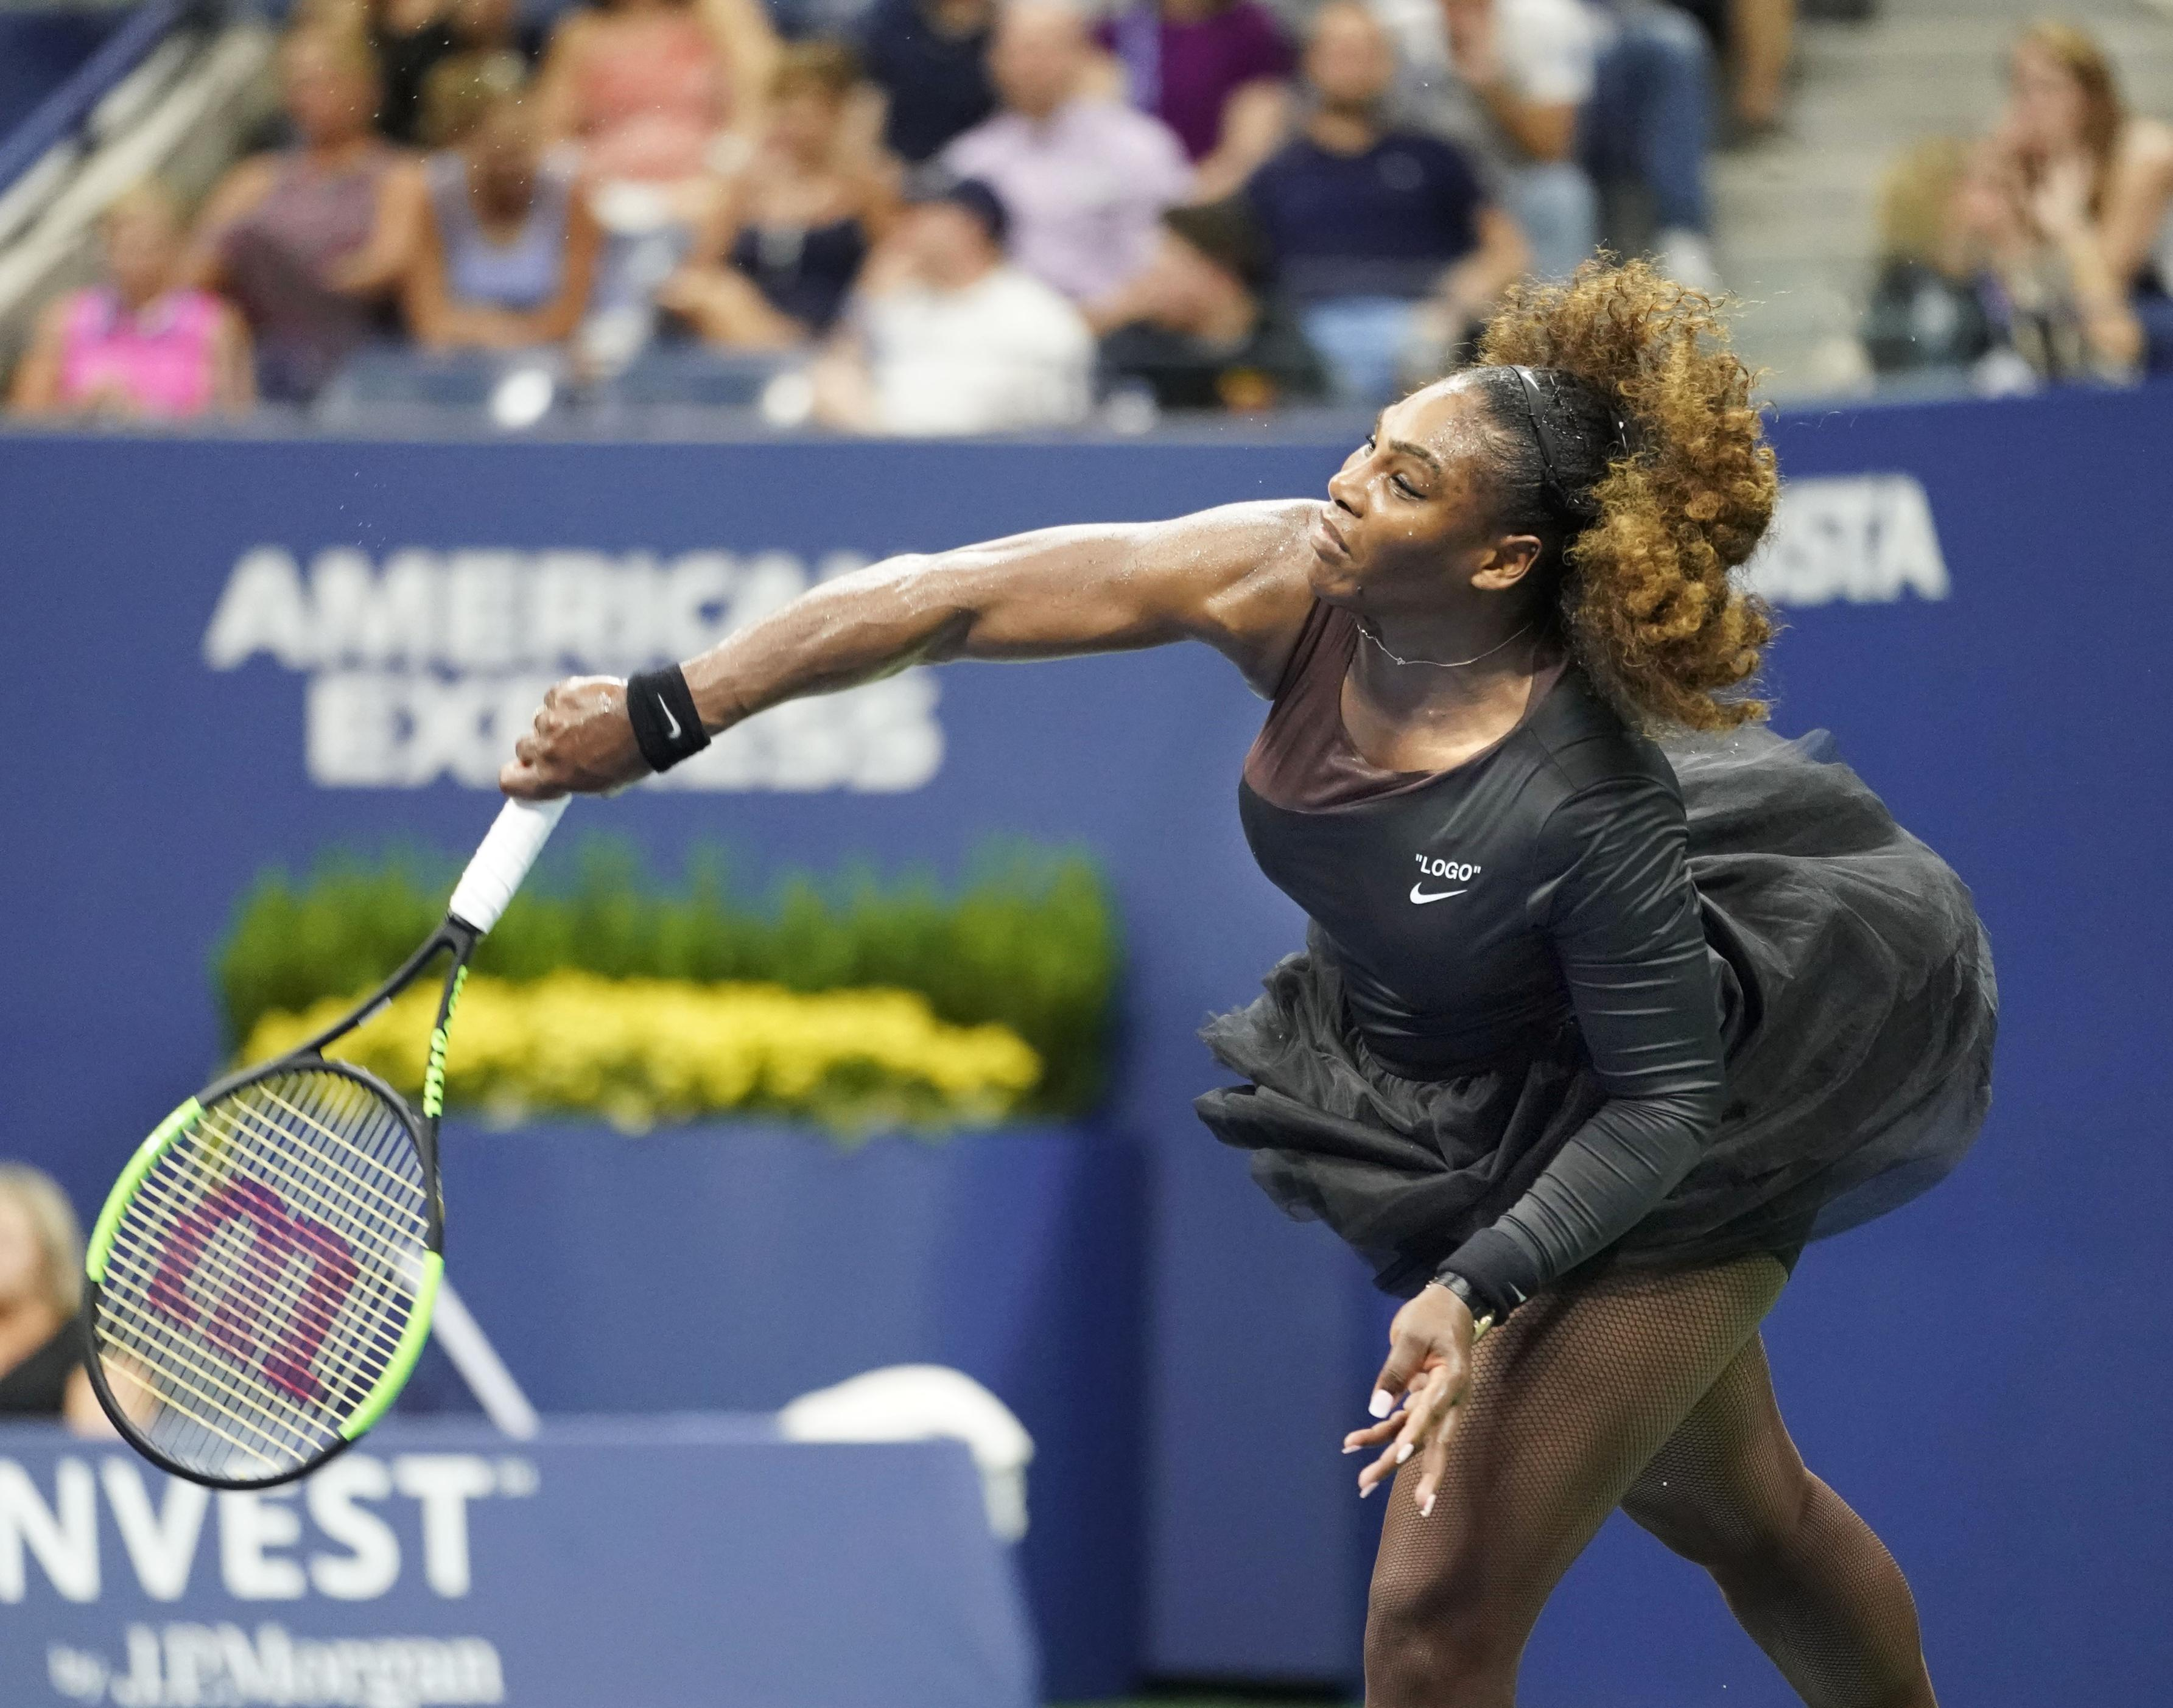 Women's Tennis Associations Stand Behind Serena Williams Following Debacle With Umpire